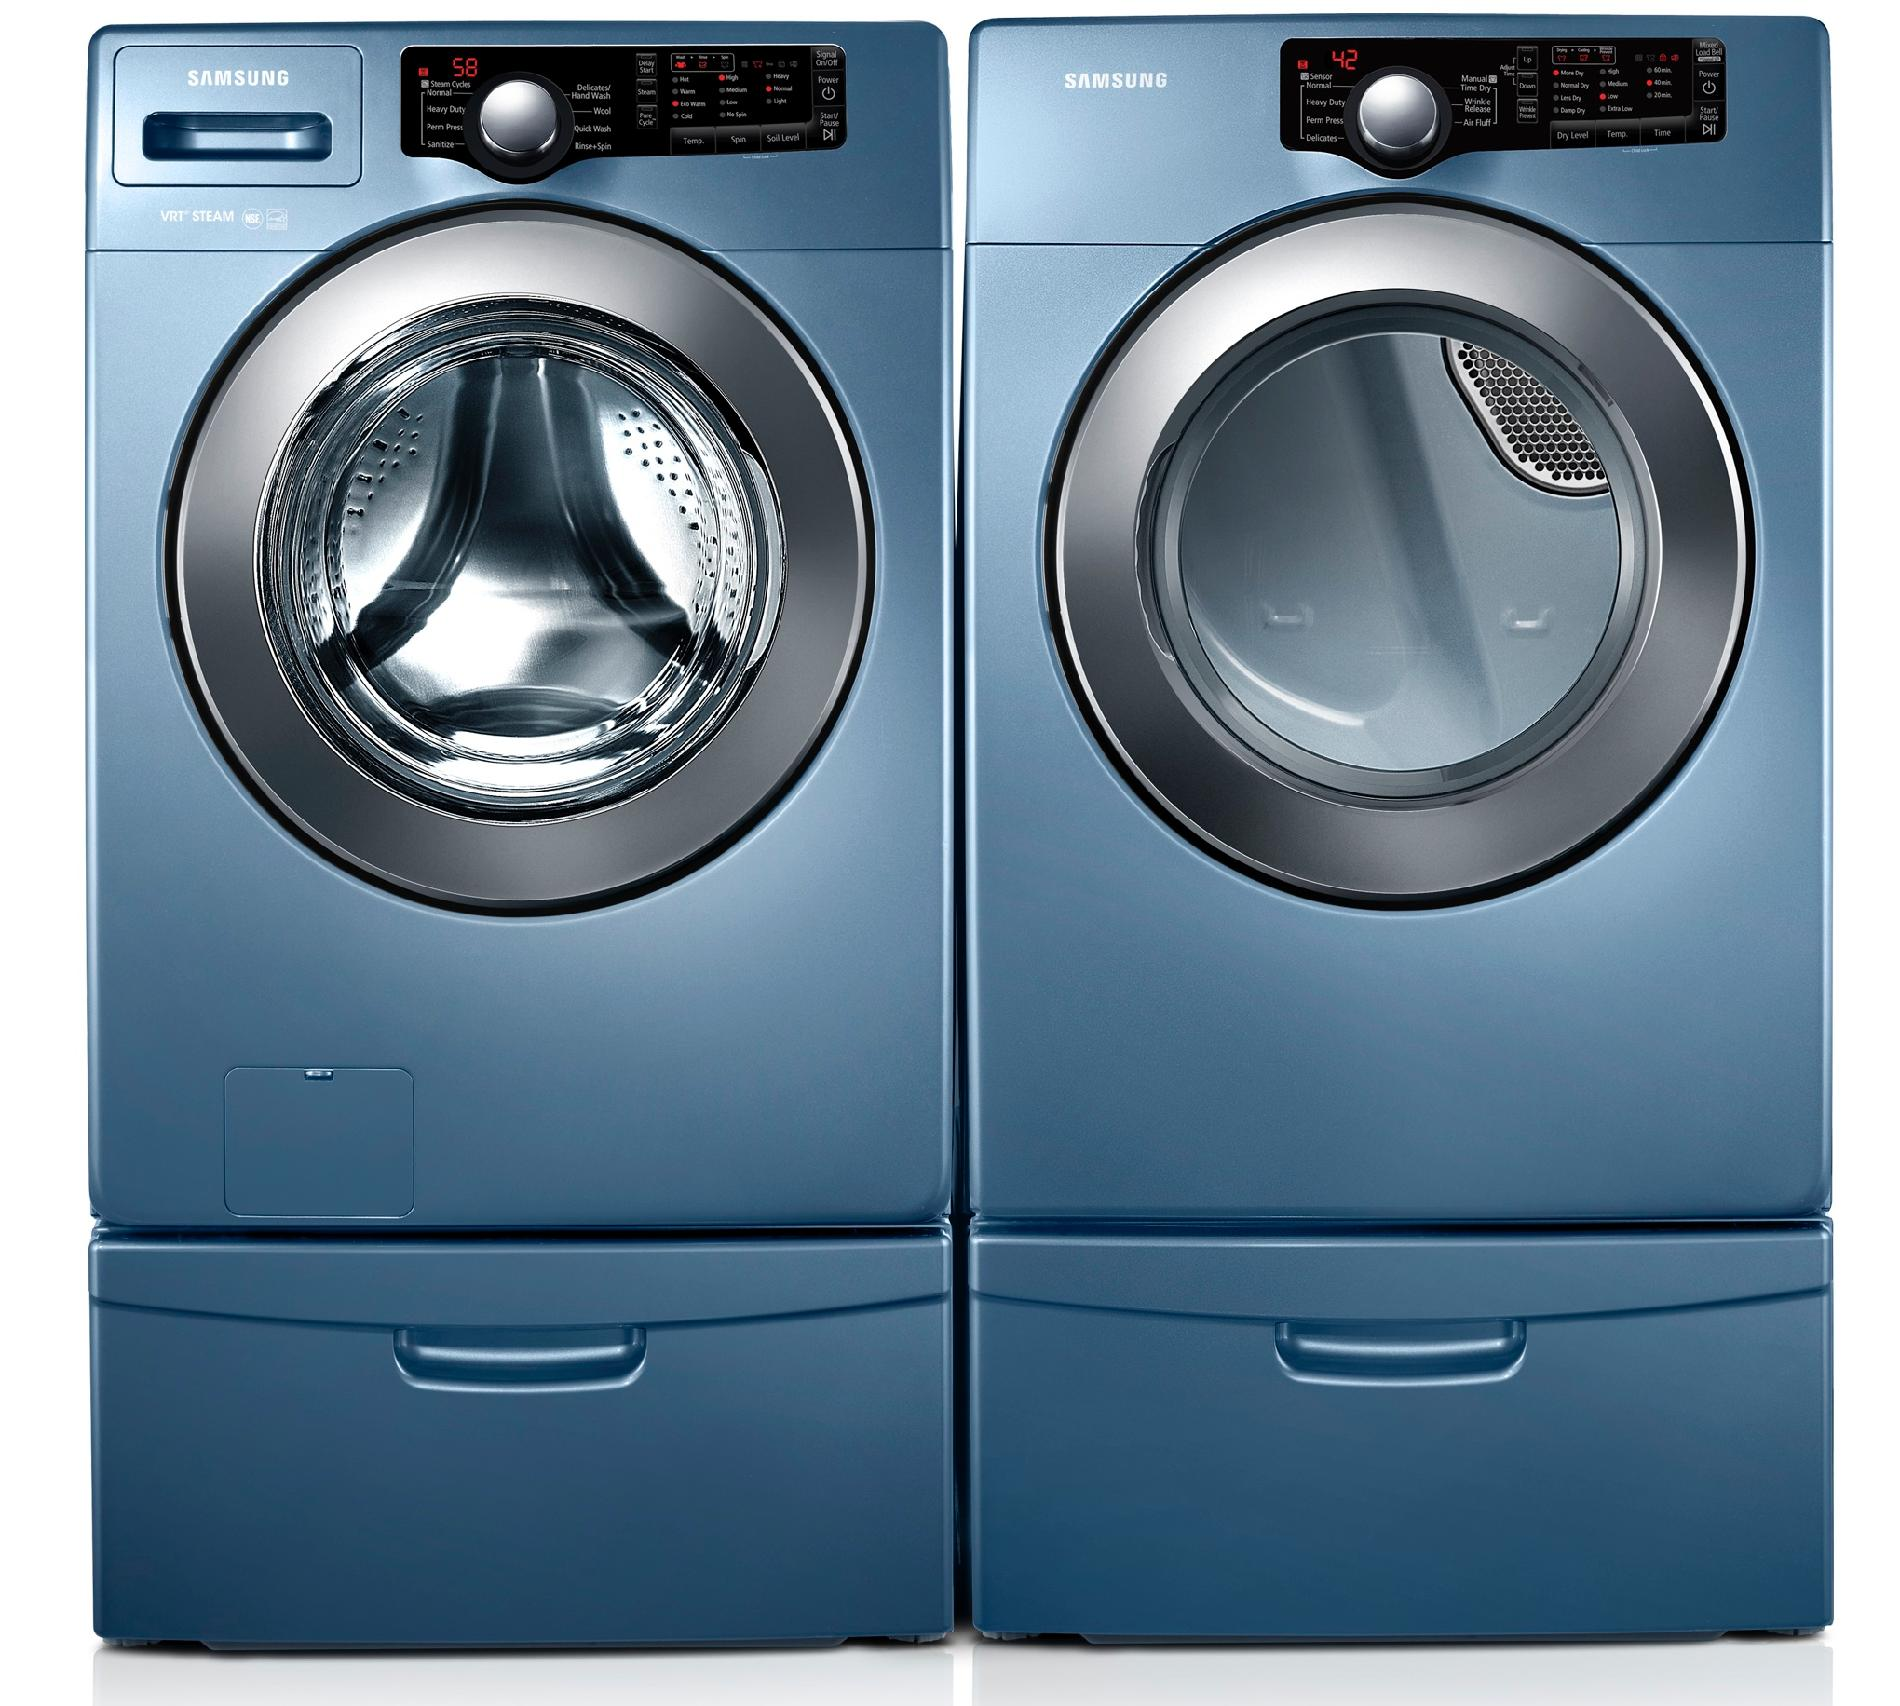 Samsung 3.6 cu. ft. High-Efficiency Front-Load Washer - Blue